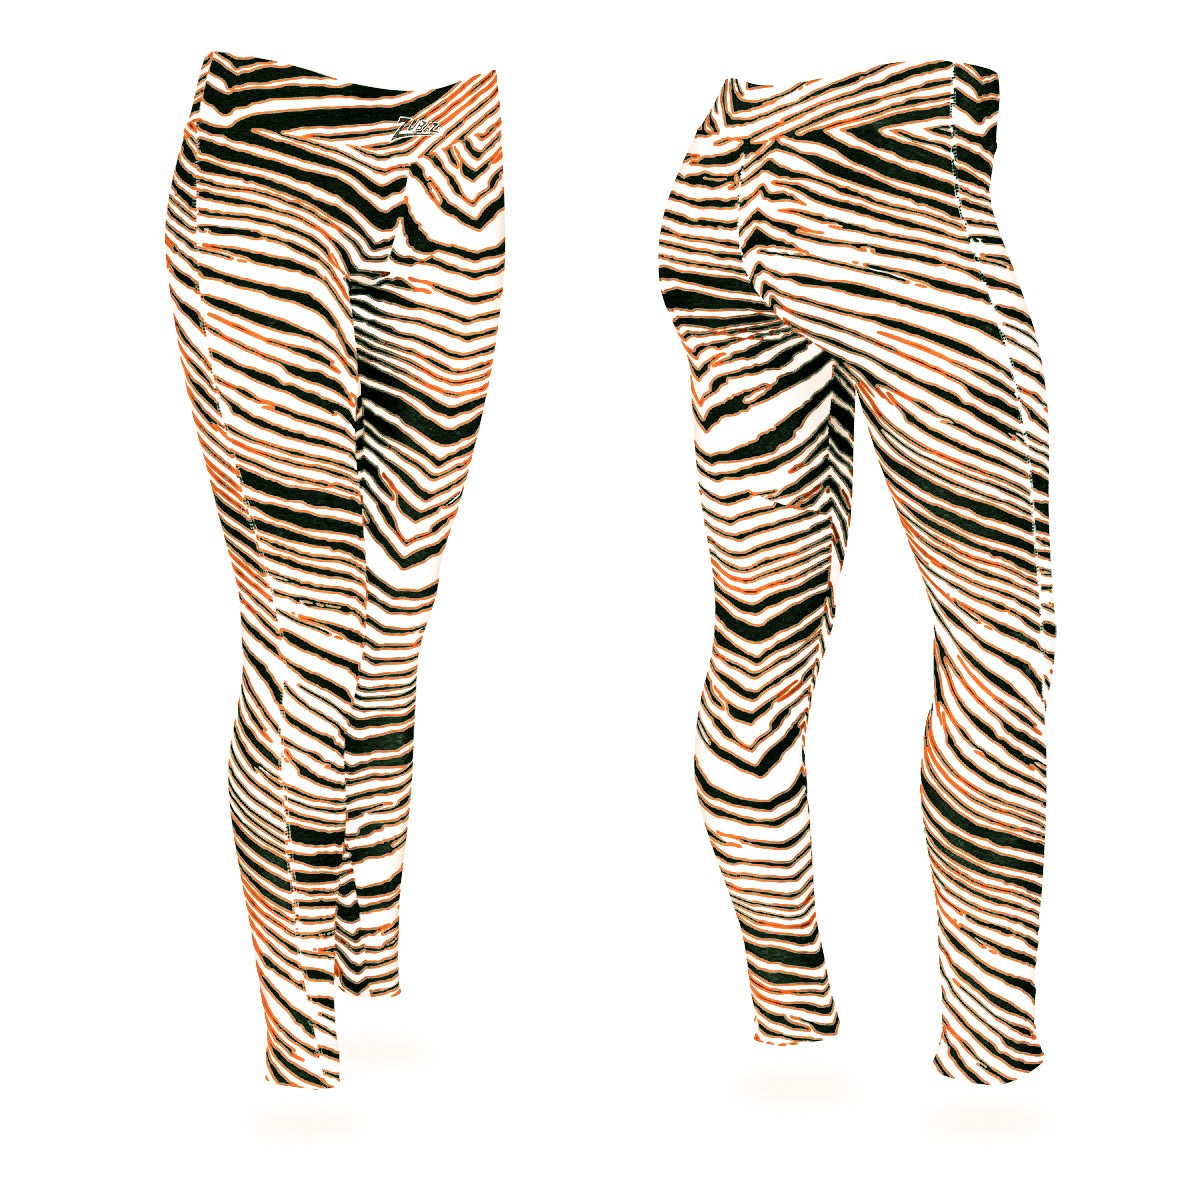 Zubaz Zebra Print Slim Fit Trousers For Ladies-Orange-Green-NA9251